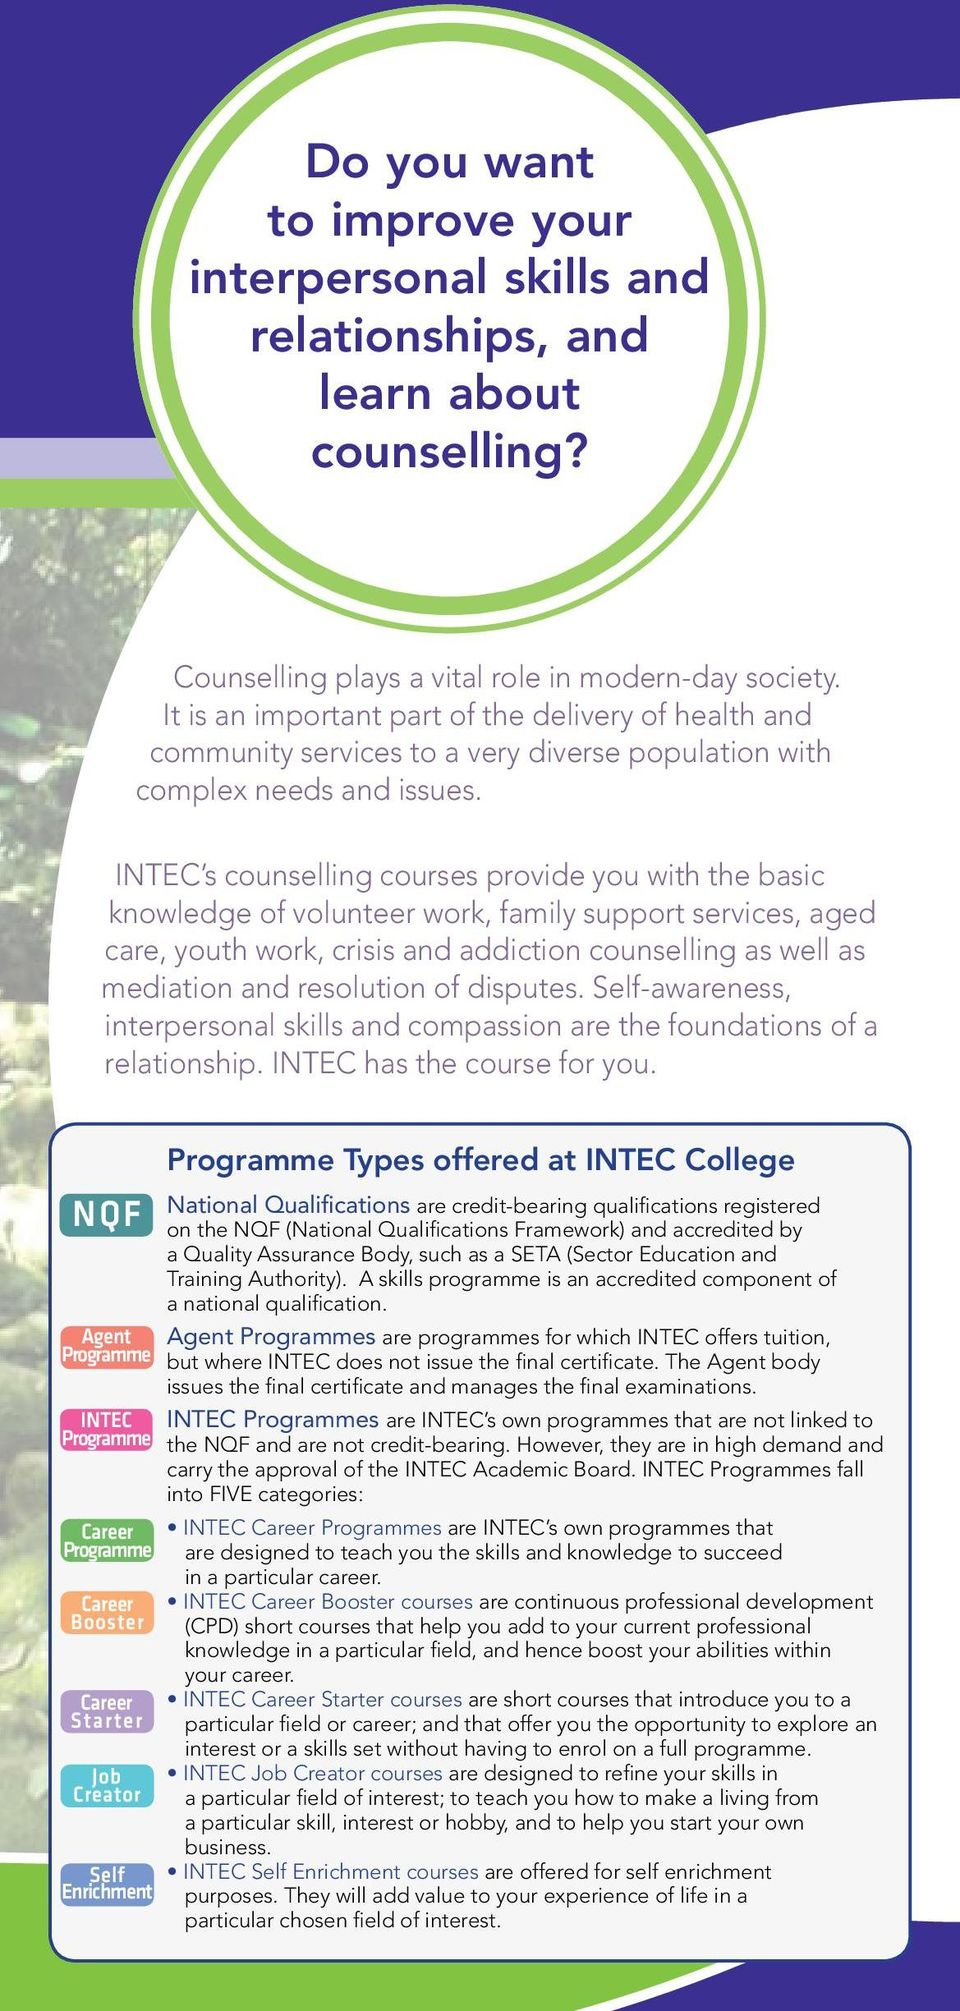 INTEC s counselling courses provide you with the basic knowledge of volunteer work, family support services, aged care, youth work, crisis and addiction counselling as well as mediation and